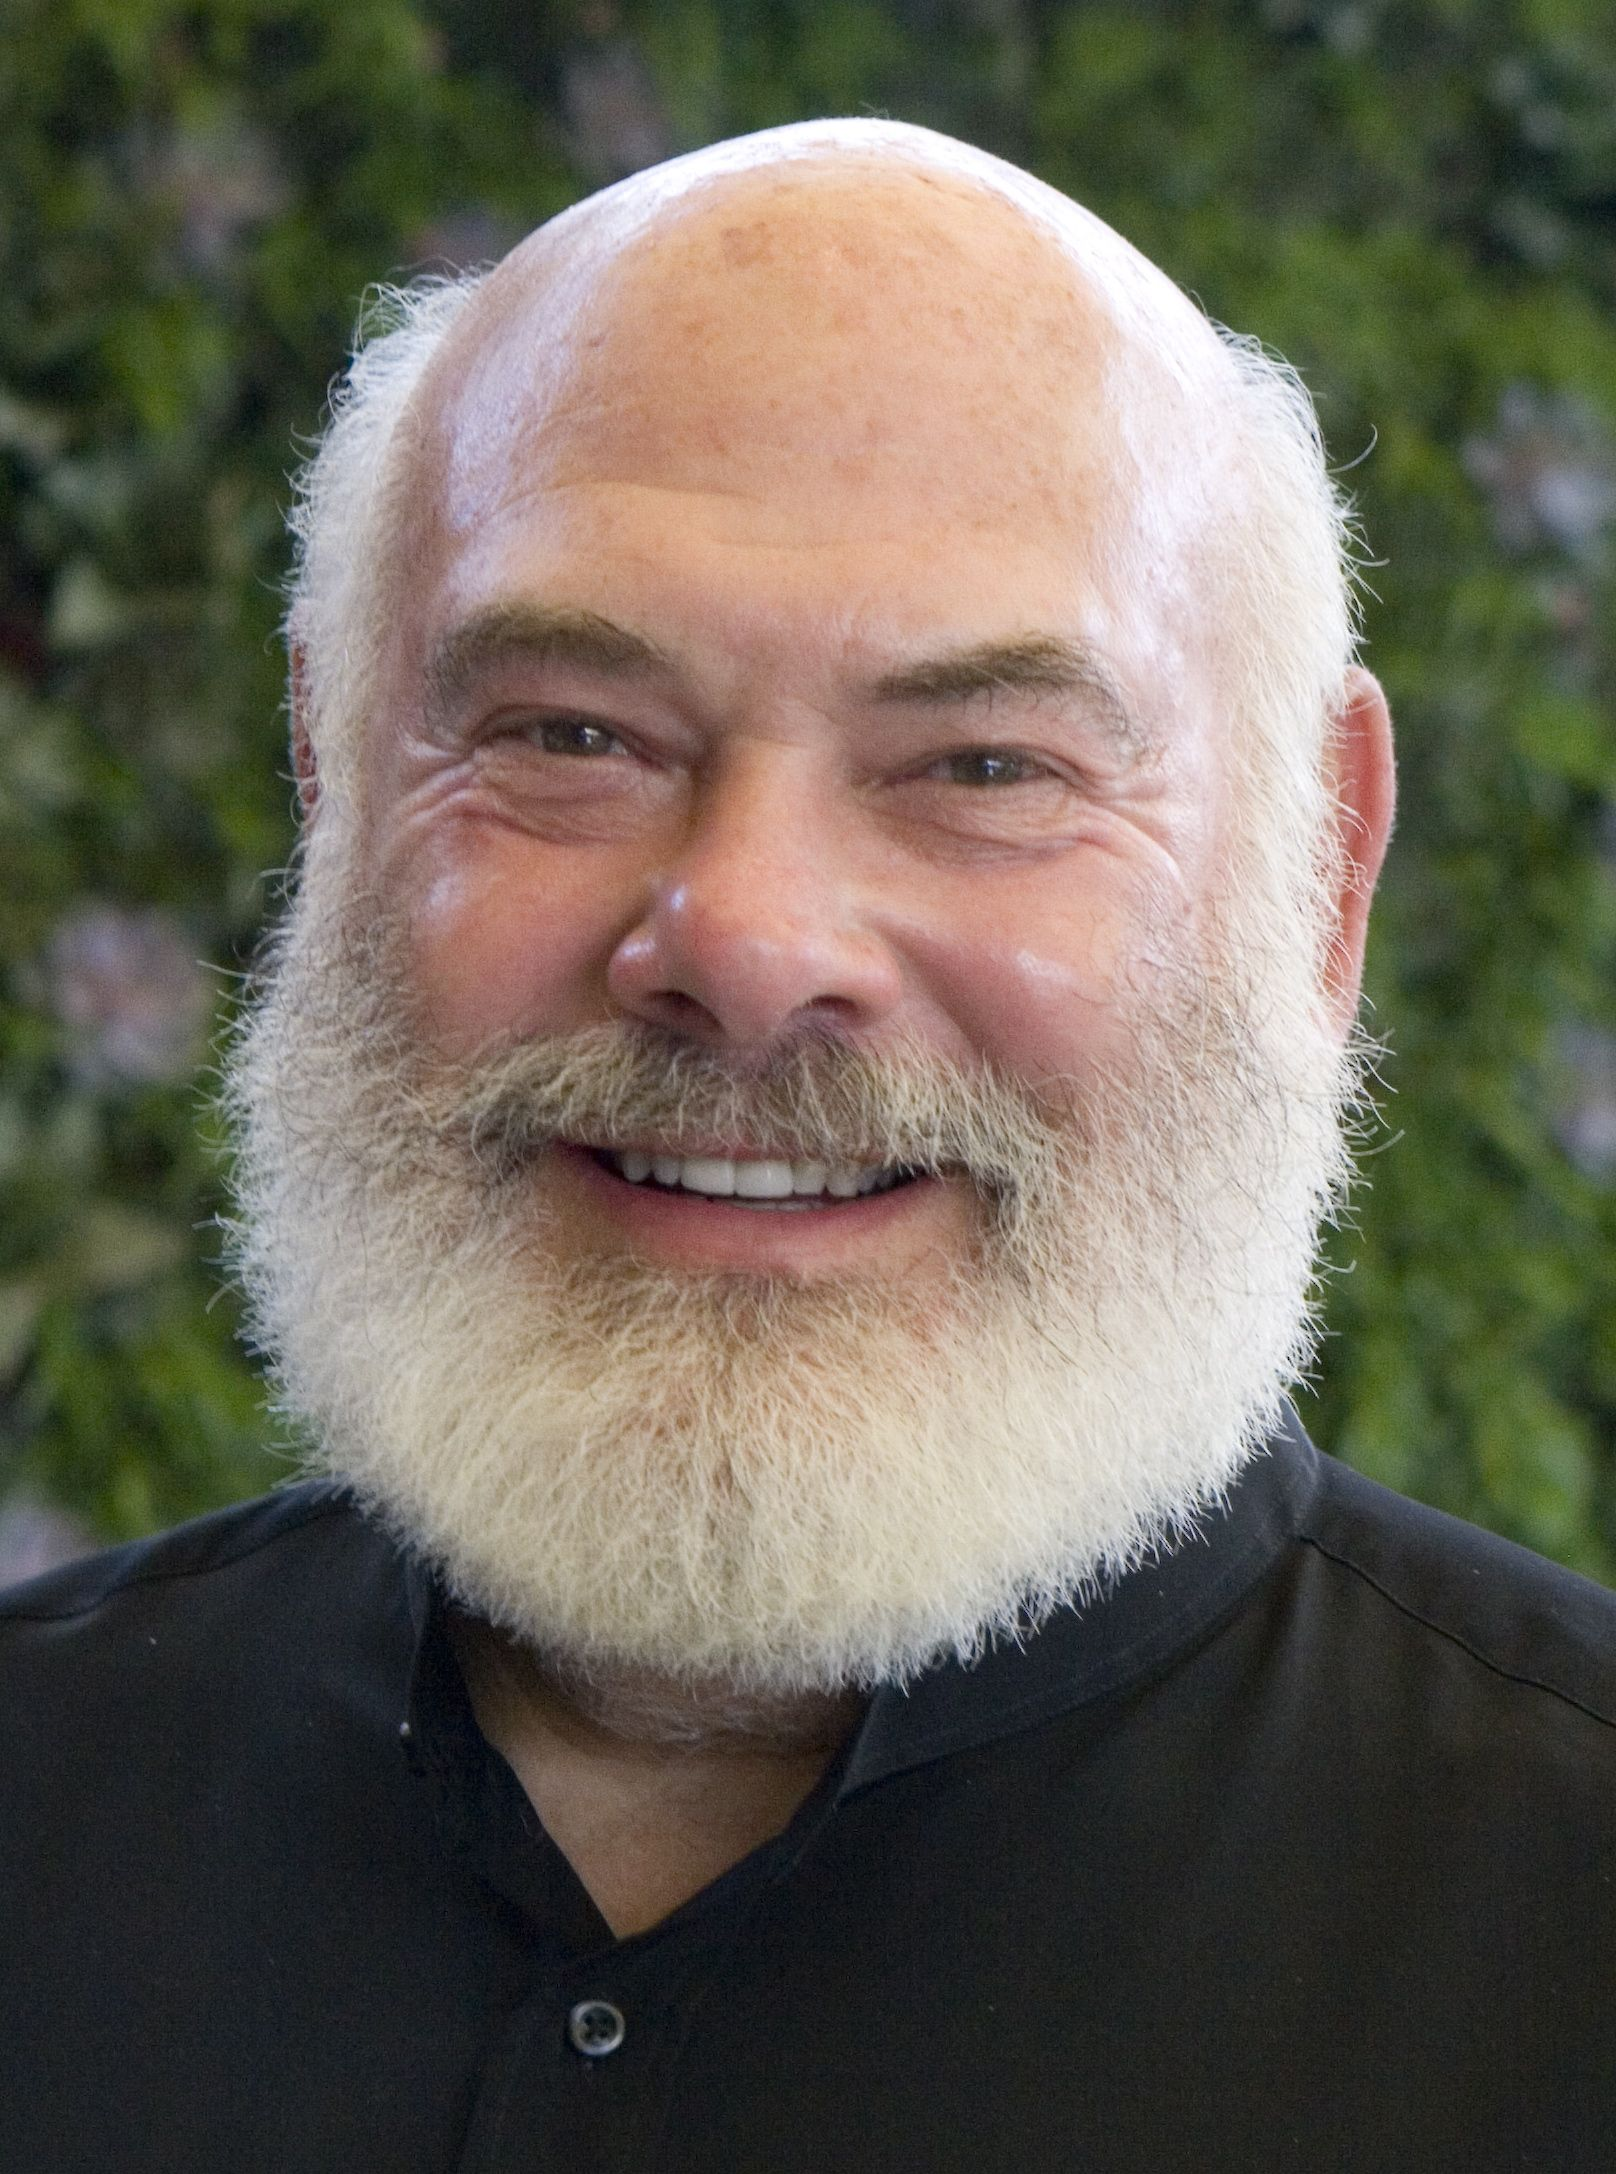 Dr  Weil is an American medical doctor, naturopath, and a